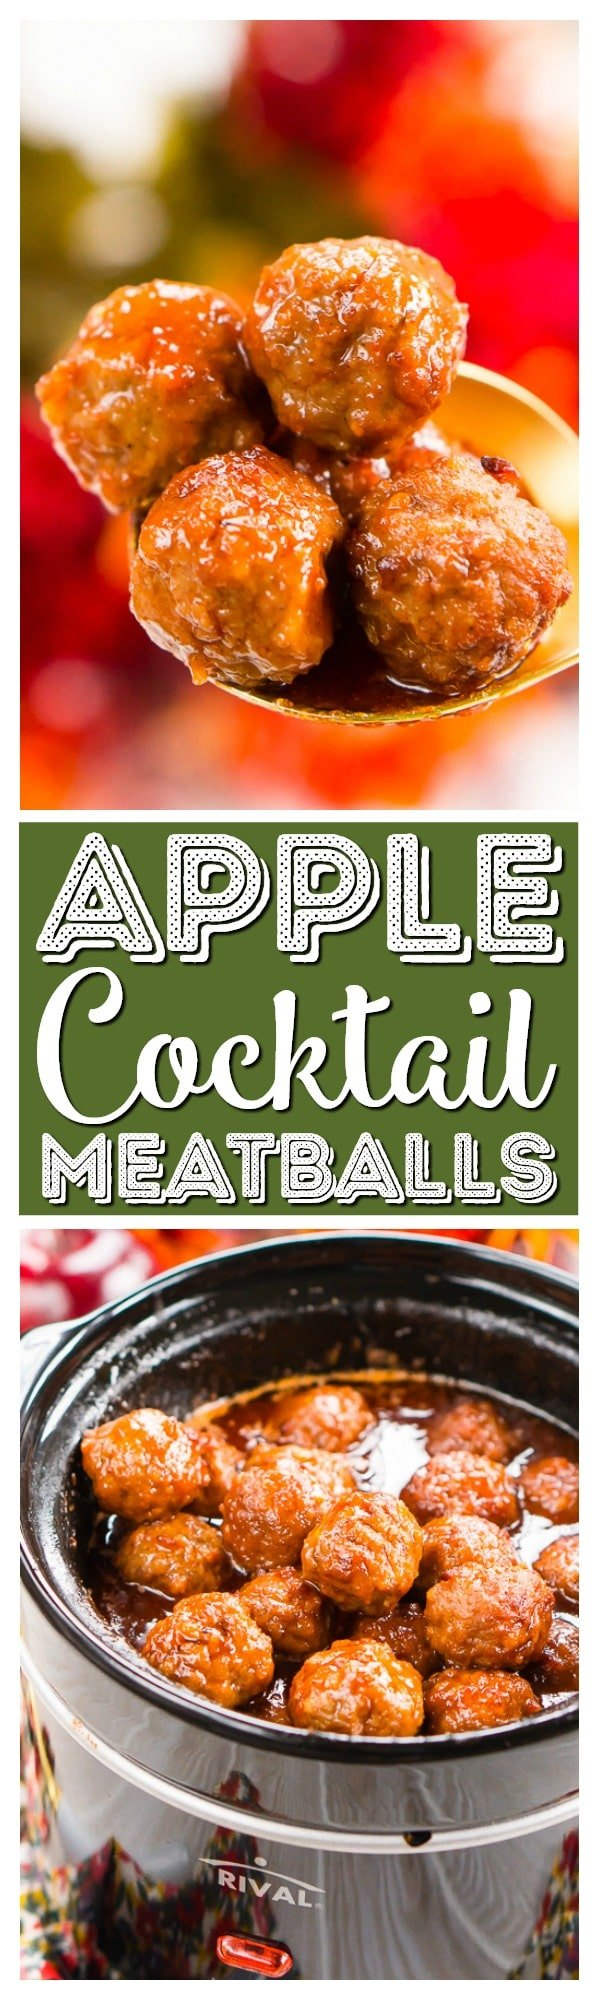 These Apple Cocktail Meatballs are aneasy party food appetizer that's made in the slow cooker and loaded with flavors that will tantalize your taste buds! via @sugarandsoulco